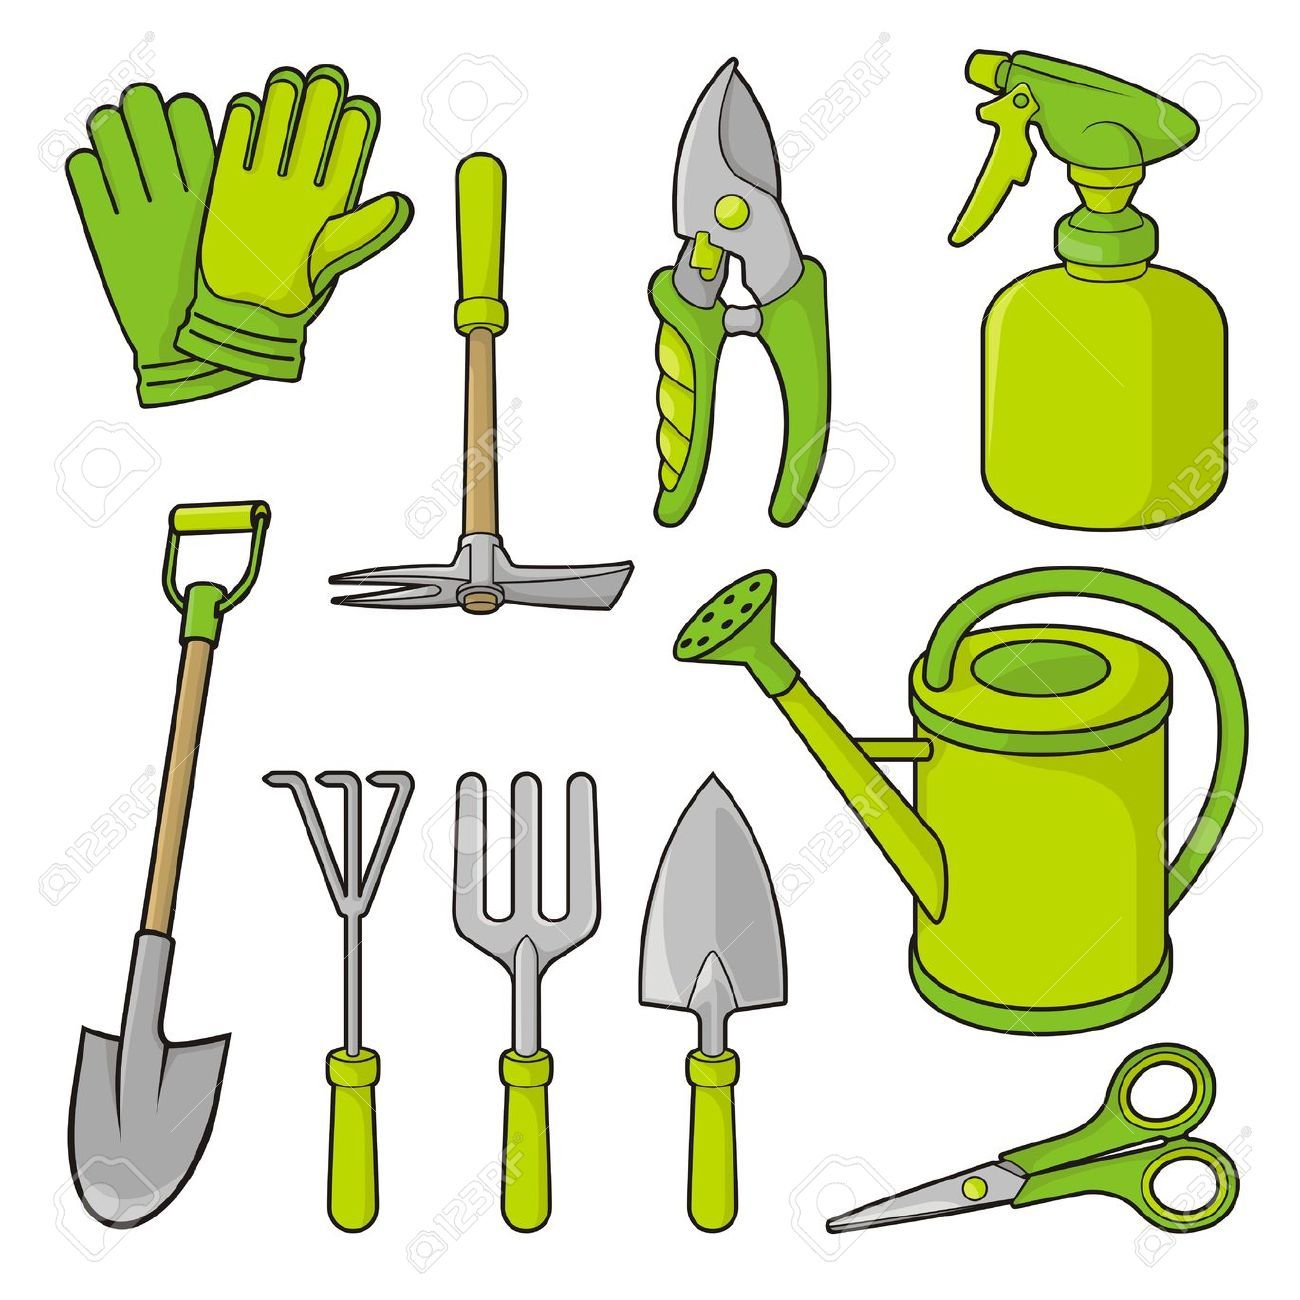 Gardening tools clip art free you can find out more for Tools and equipment in planting